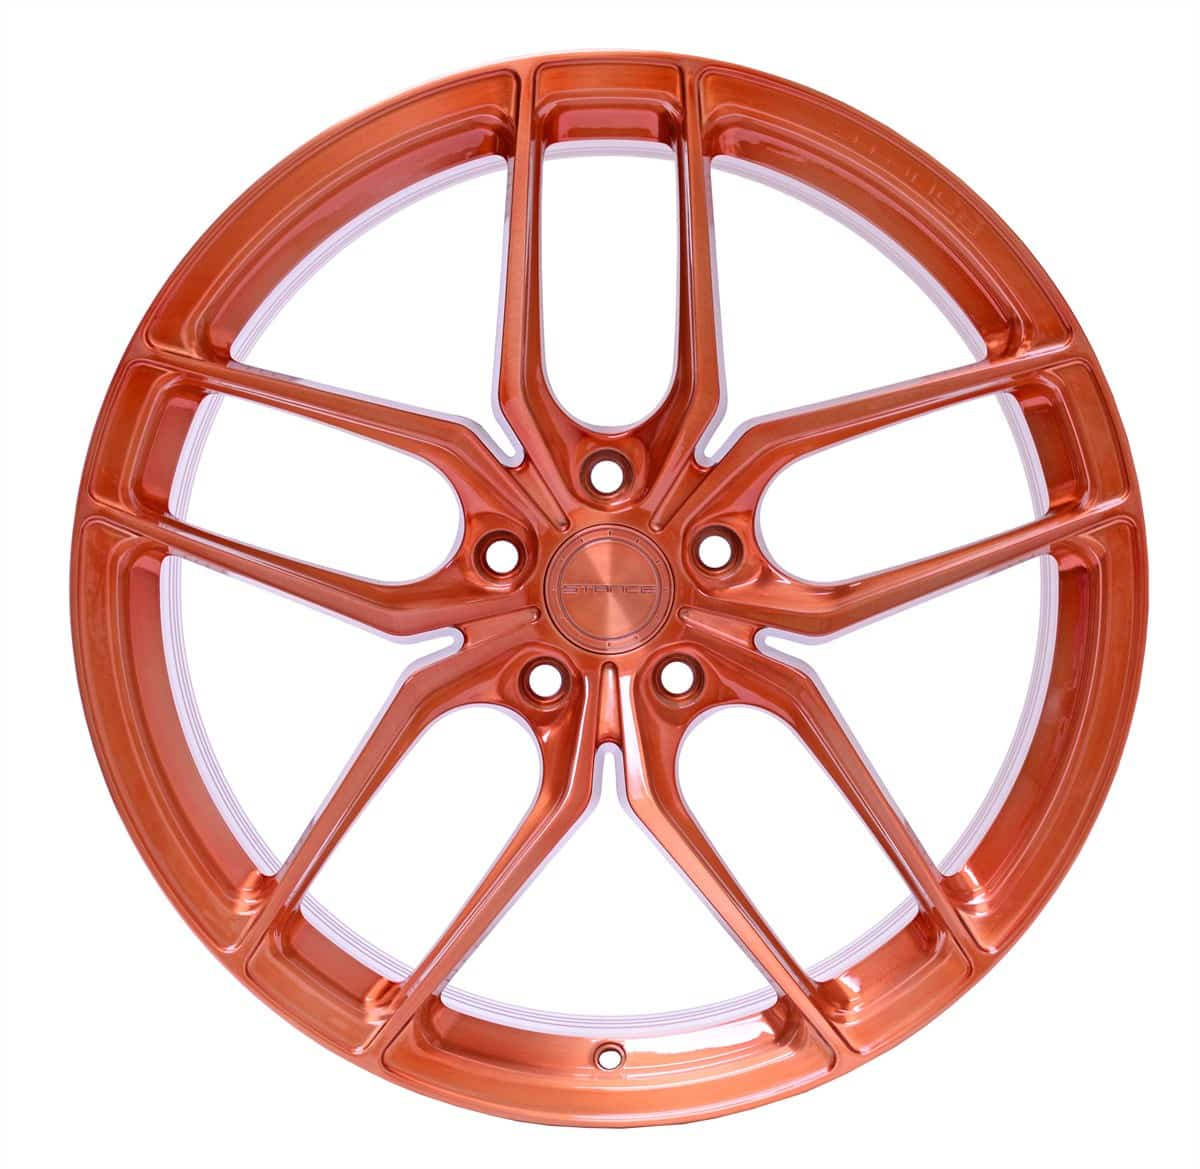 STANCE-SF03-ROTORY-FORGED-ROSE-GOLD-CONCAVE-WHEELS.jpg